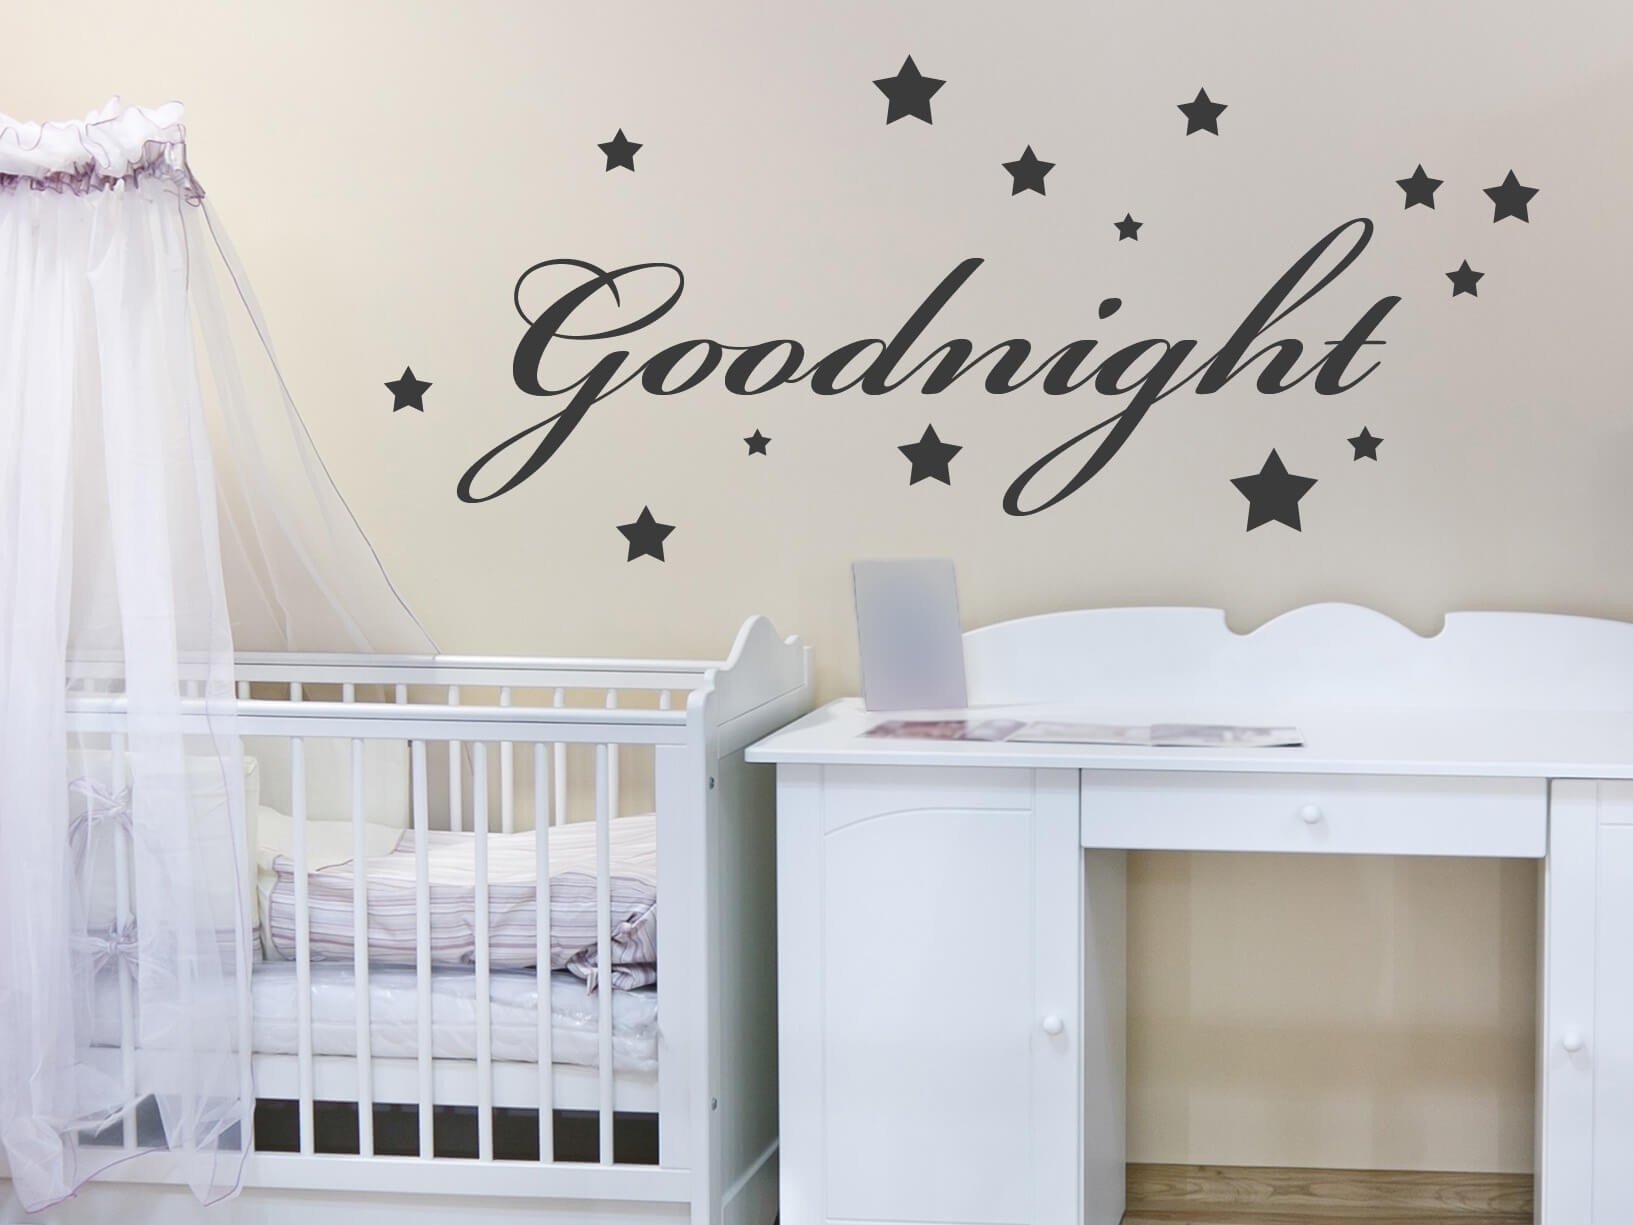 muursticker quotgoodnight met sterrenquot kinderkamer muurstickers